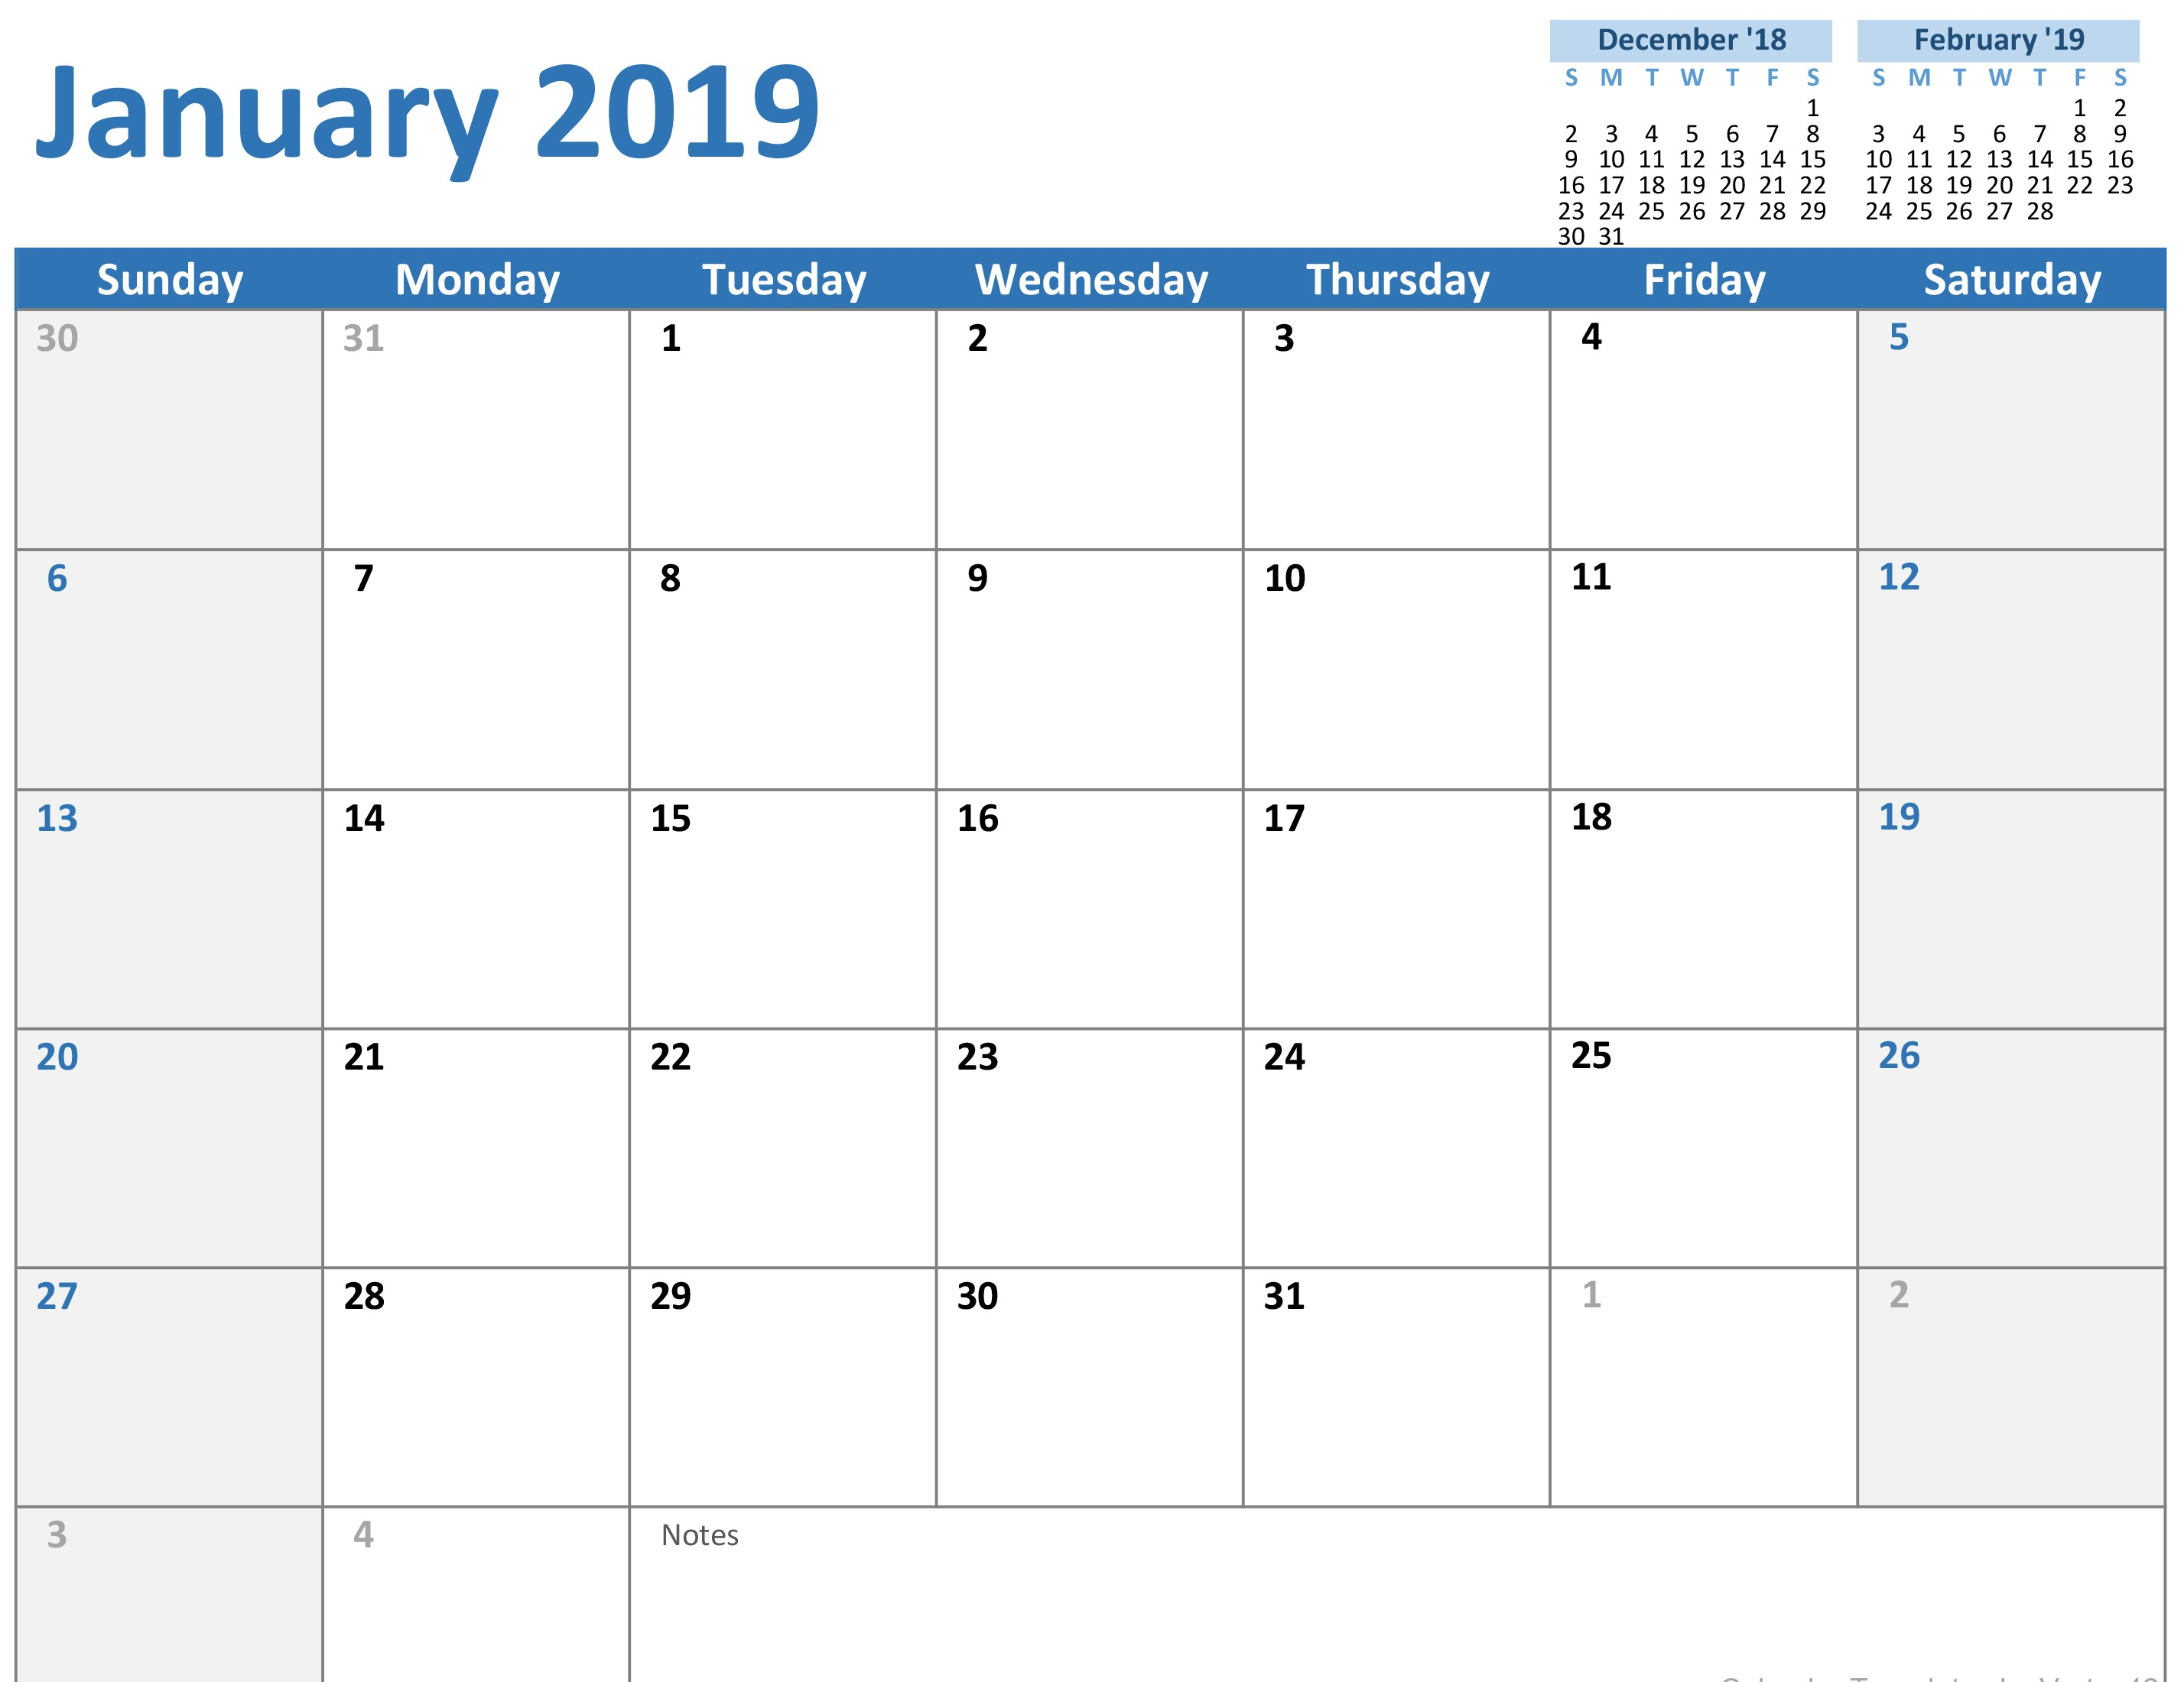 Excel Calendar Template for 2019 and Beyond